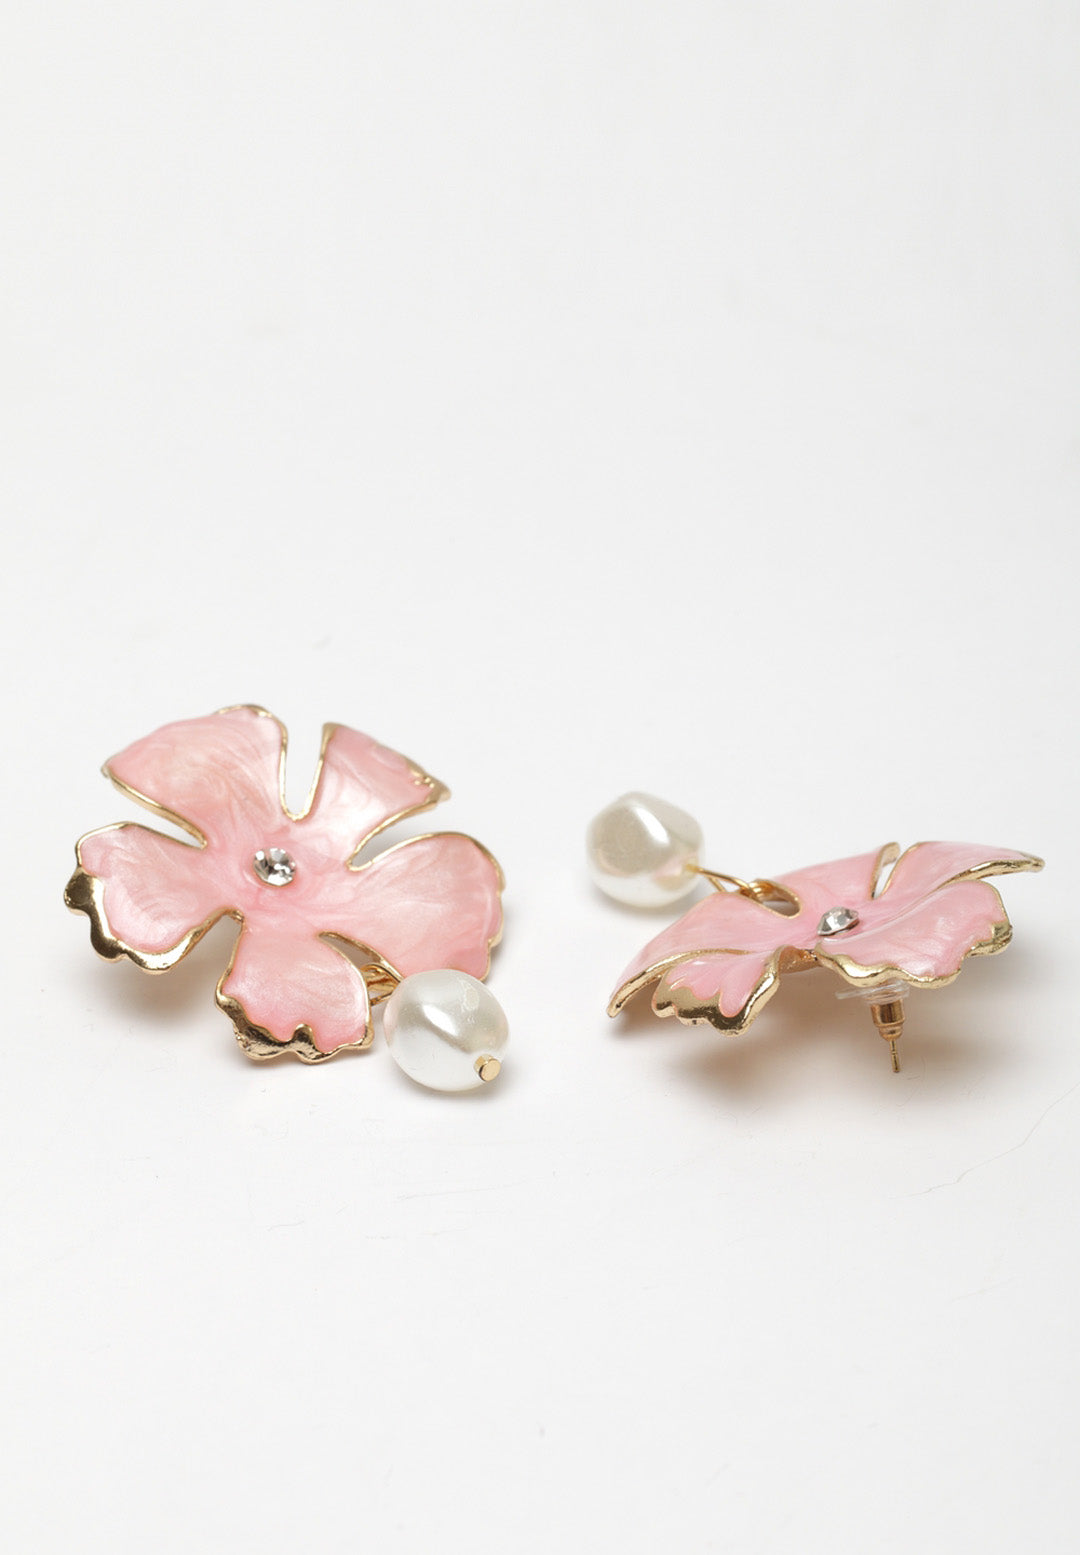 Avant-Garde Paris Statement Bohemian Summer Cute Pink Pearl Flower Stud Earrings